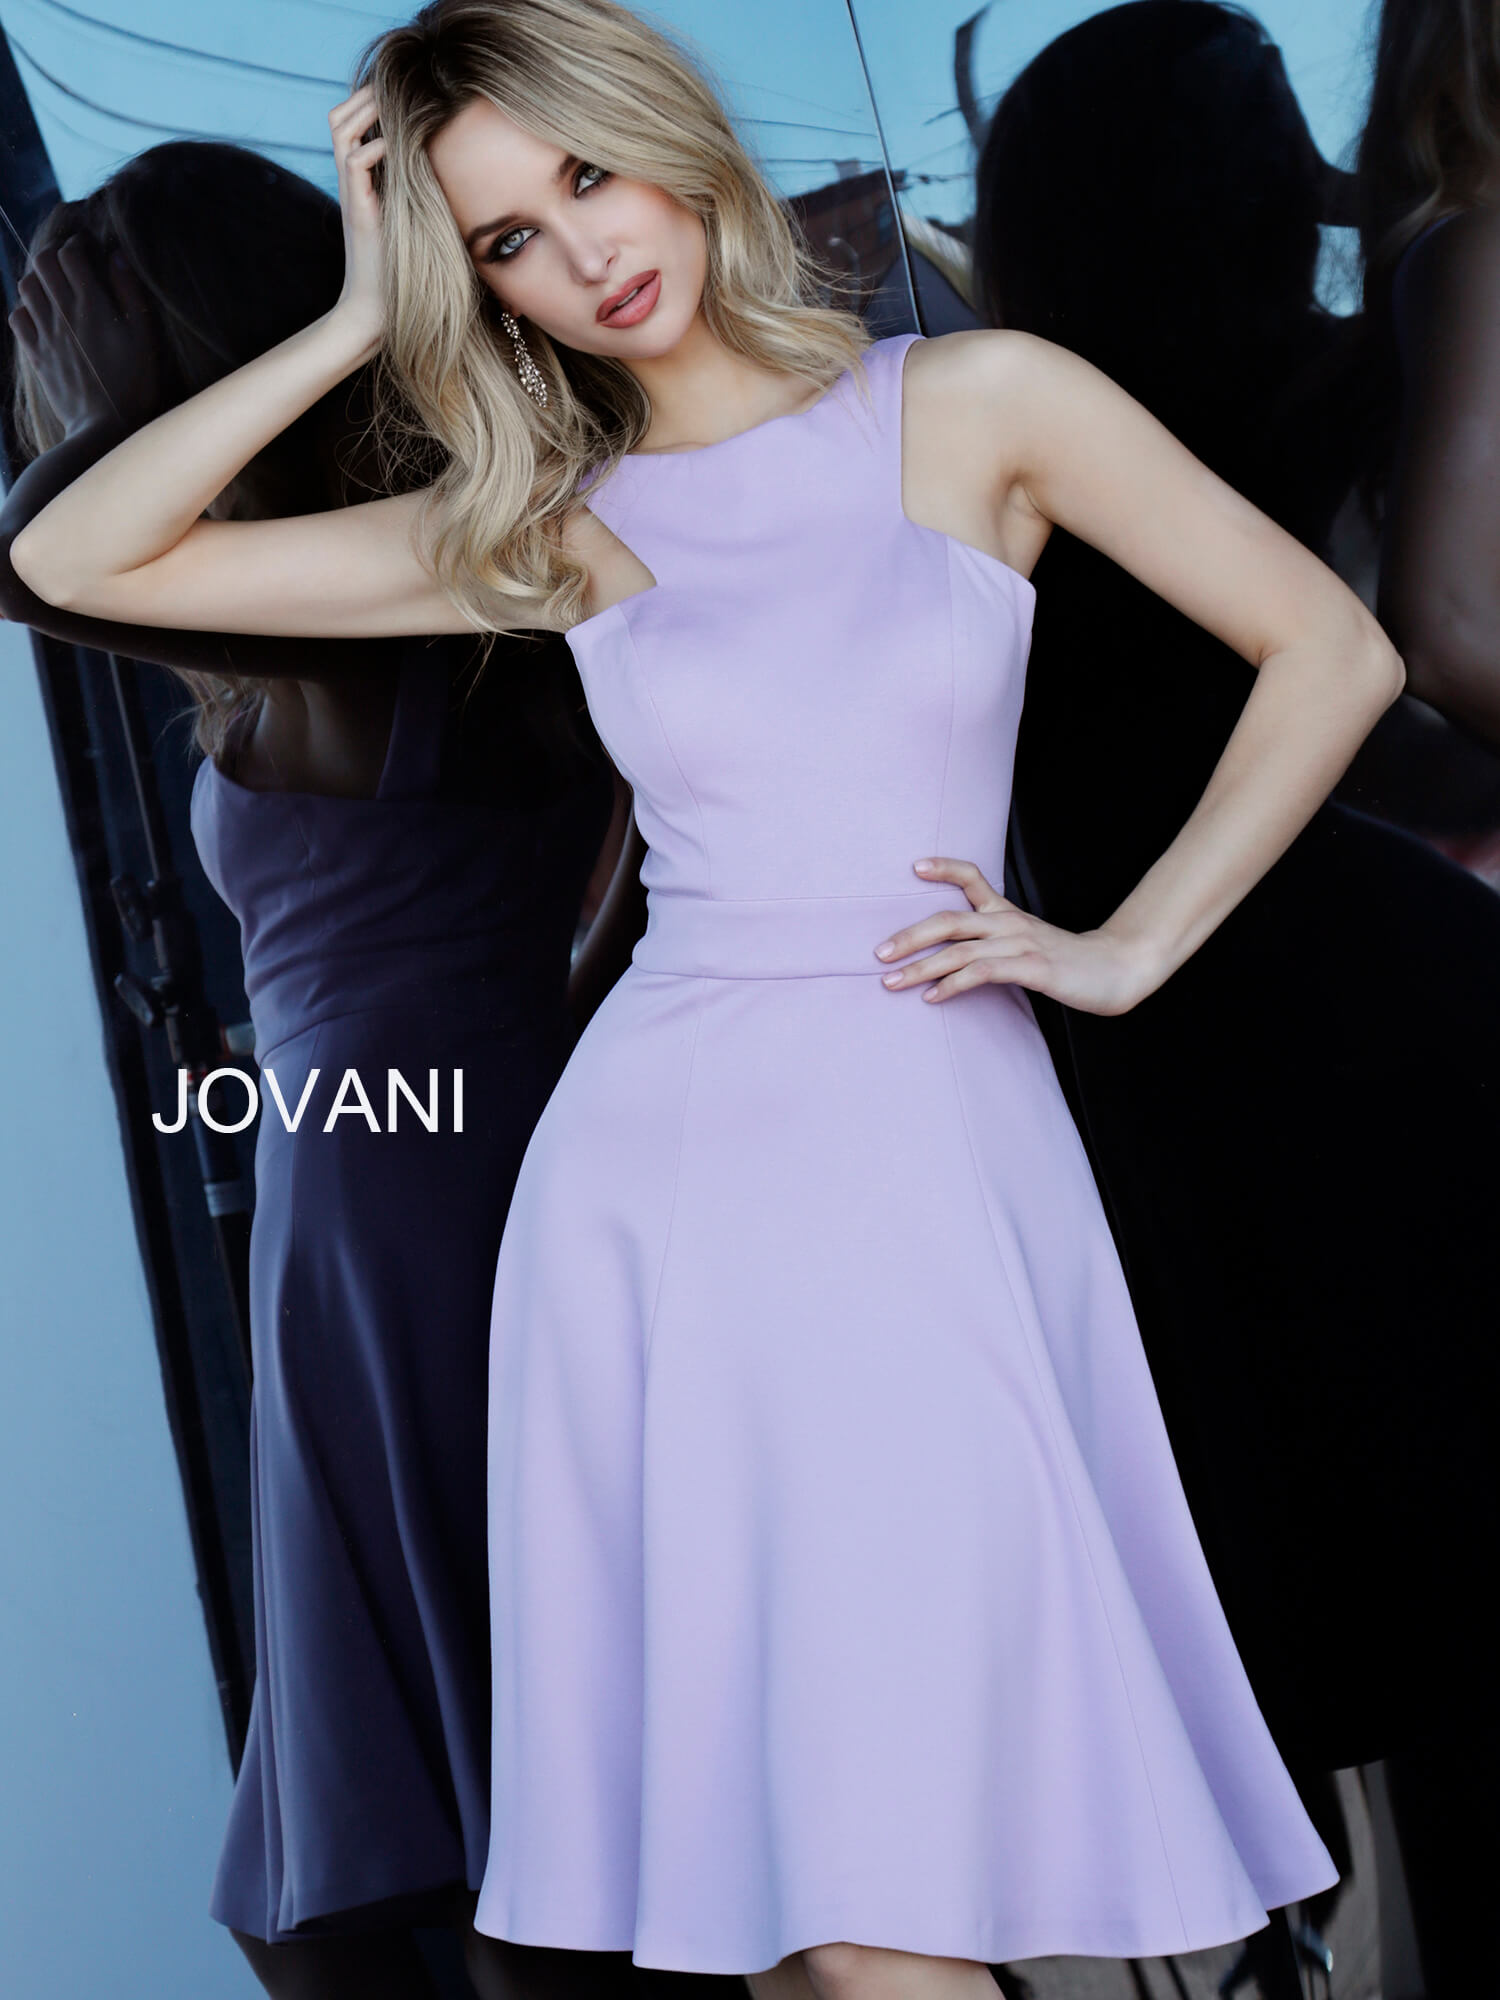 jovani Jovani 48996 Lilac Fit and Flare Sleeveless Cocktail Dress  on mobile 1